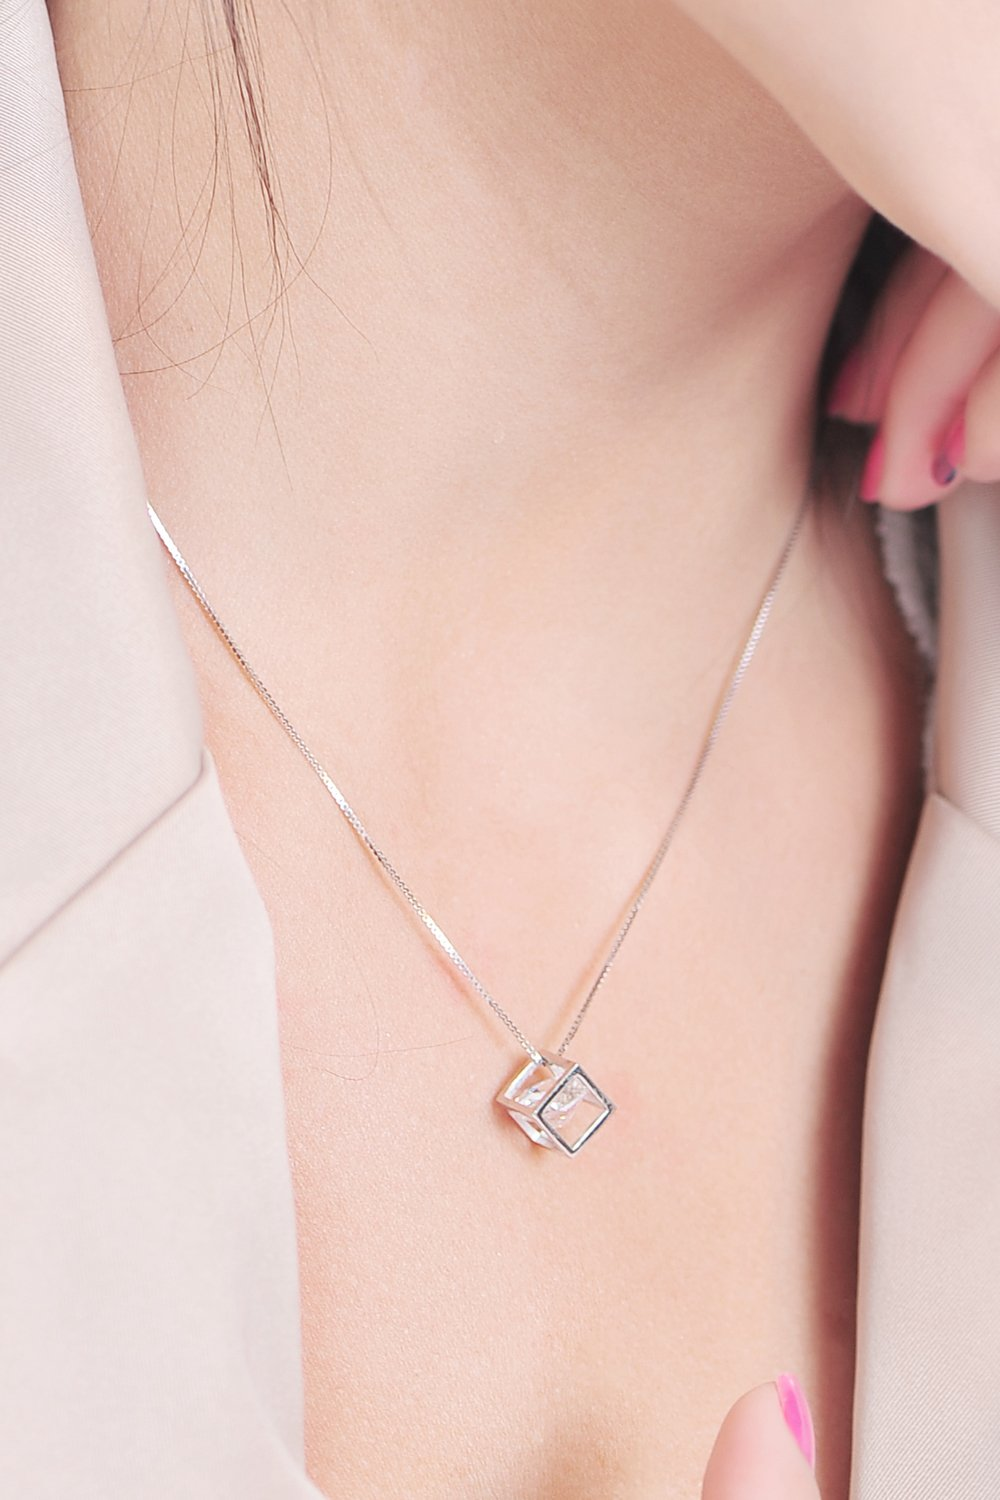 Thai Love Your Unique Cube Clavicle Chain Necklace Pendant Women Girls Short s925 Silver Accessories Women Gift Gift